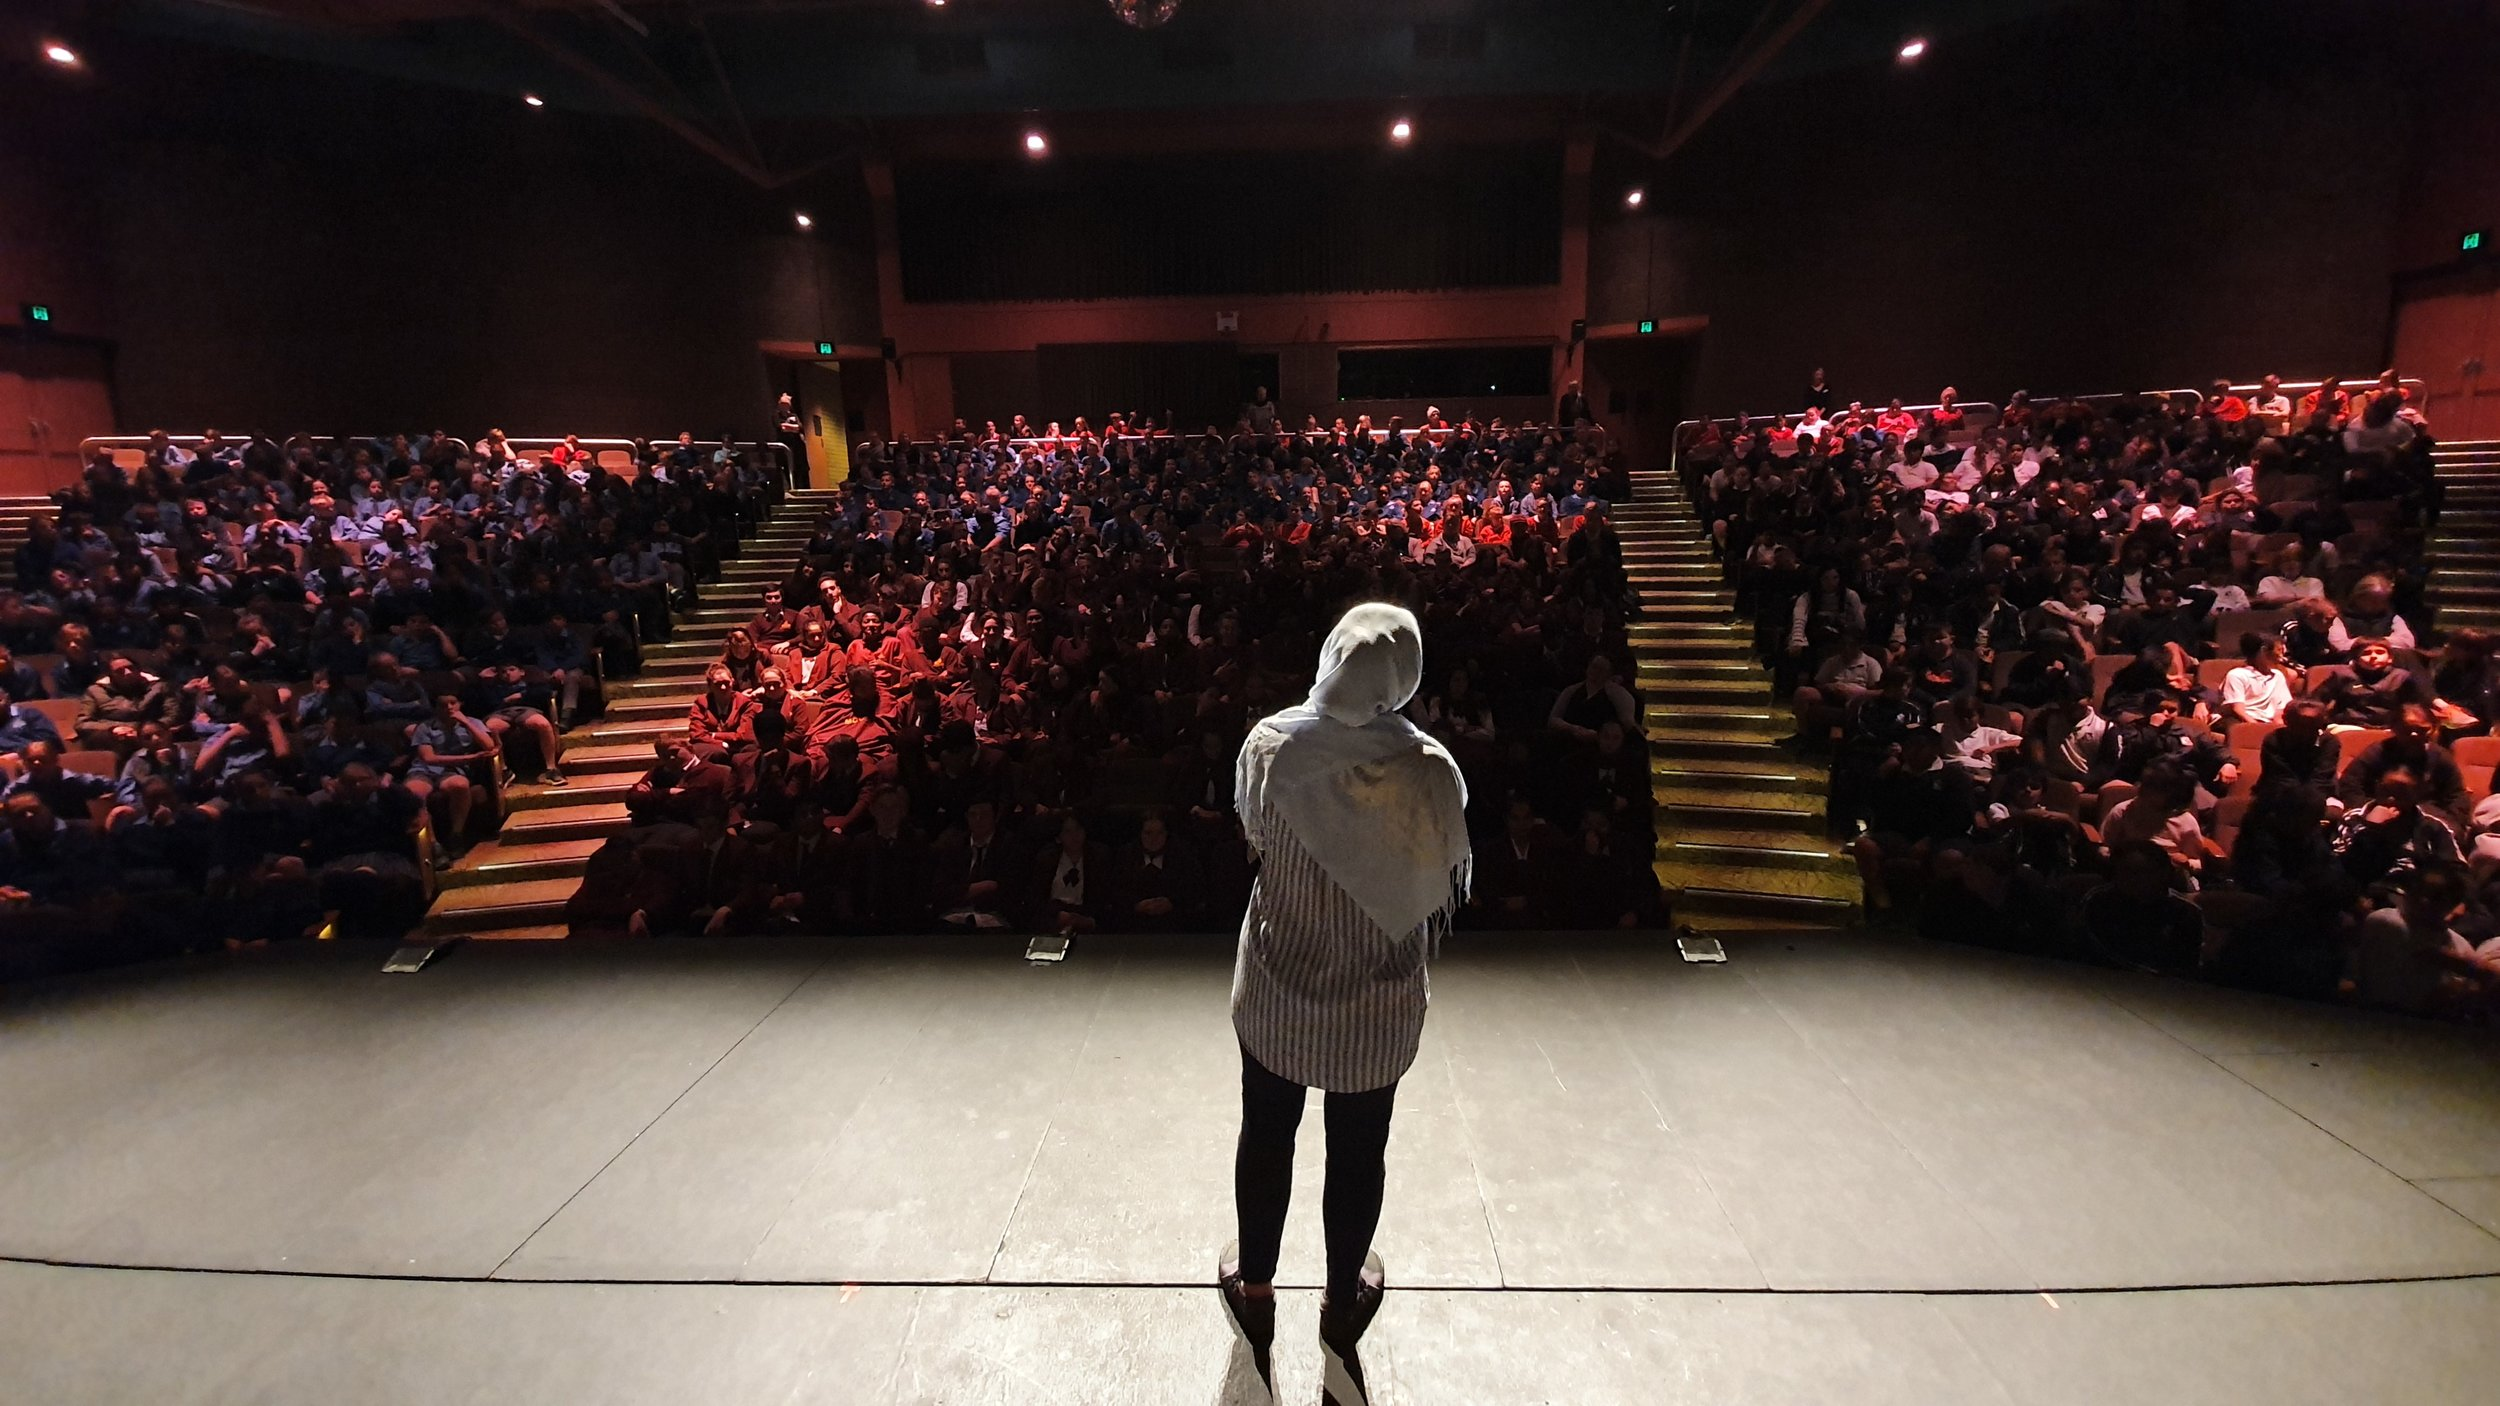 Nagina speaking to 523 school students at the Griffith Regional Theatre.jpg